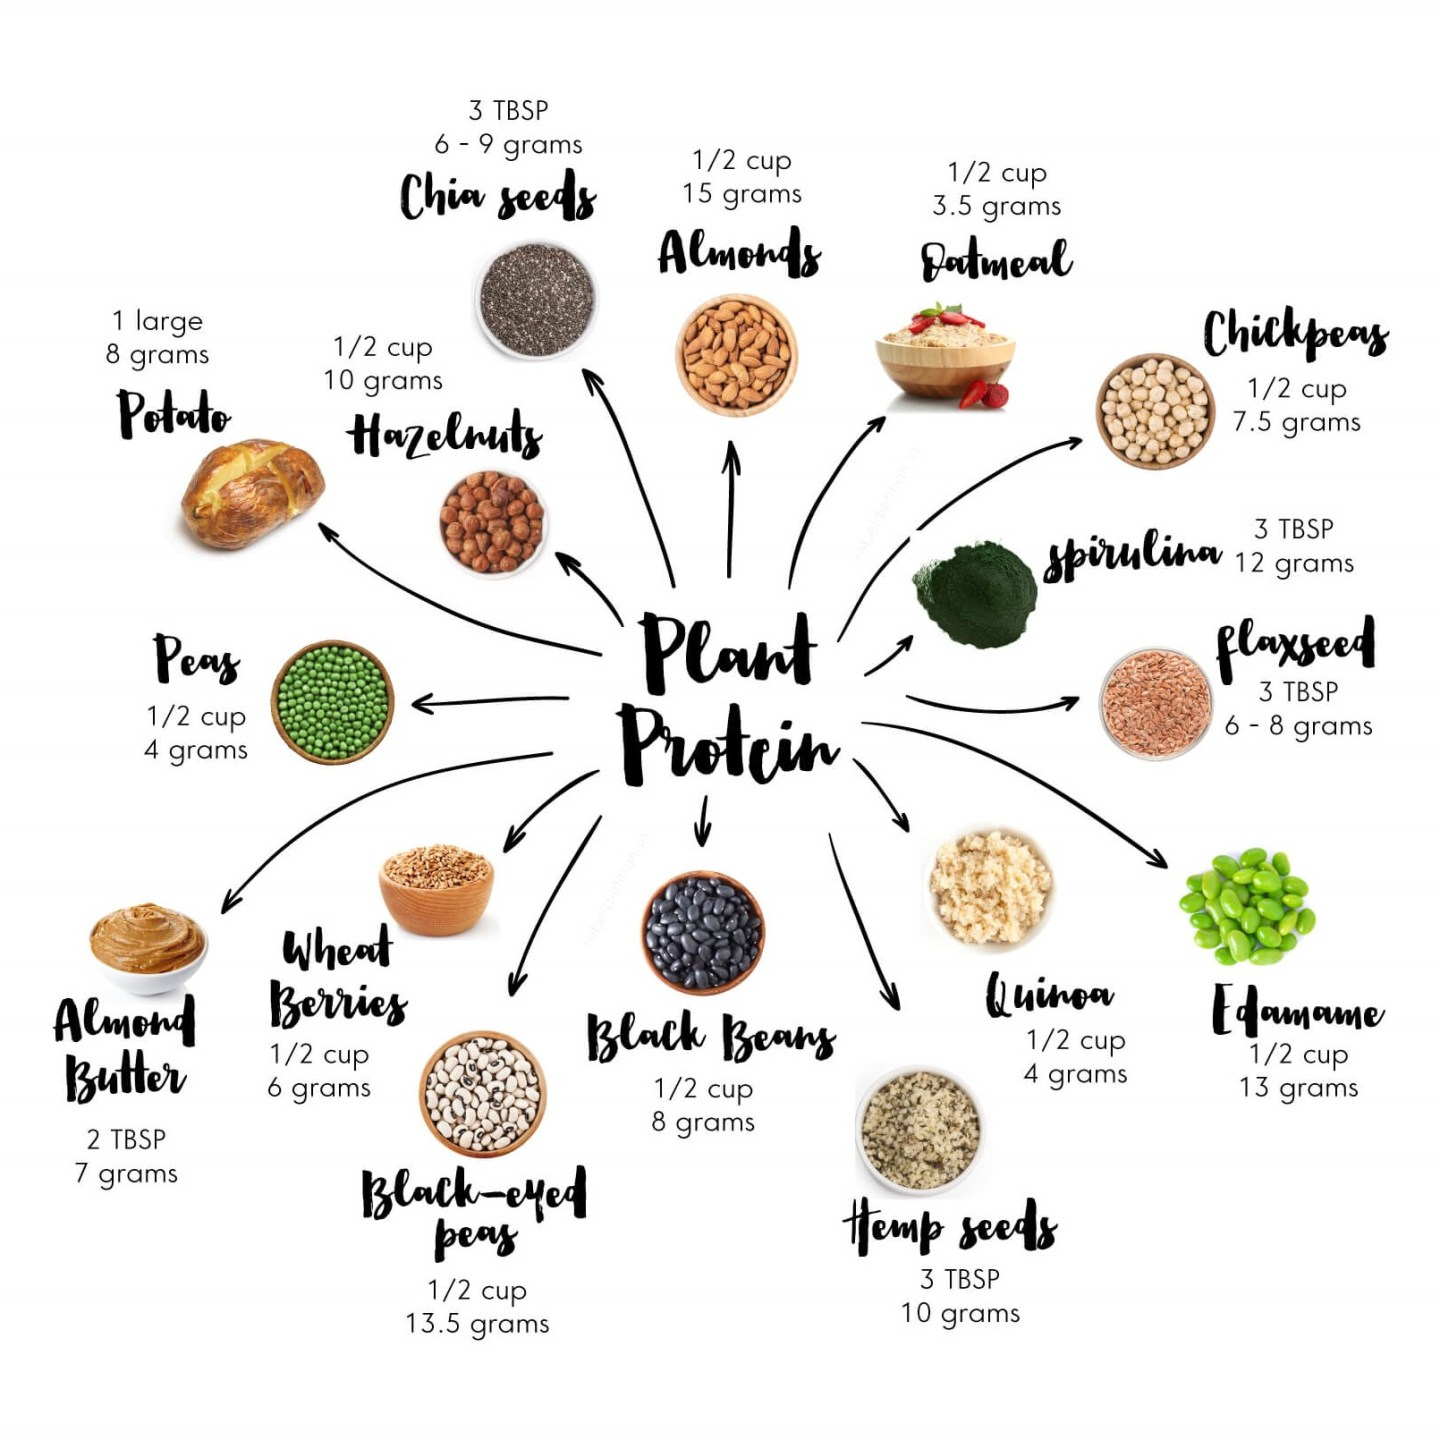 vegan / plant-based proteins